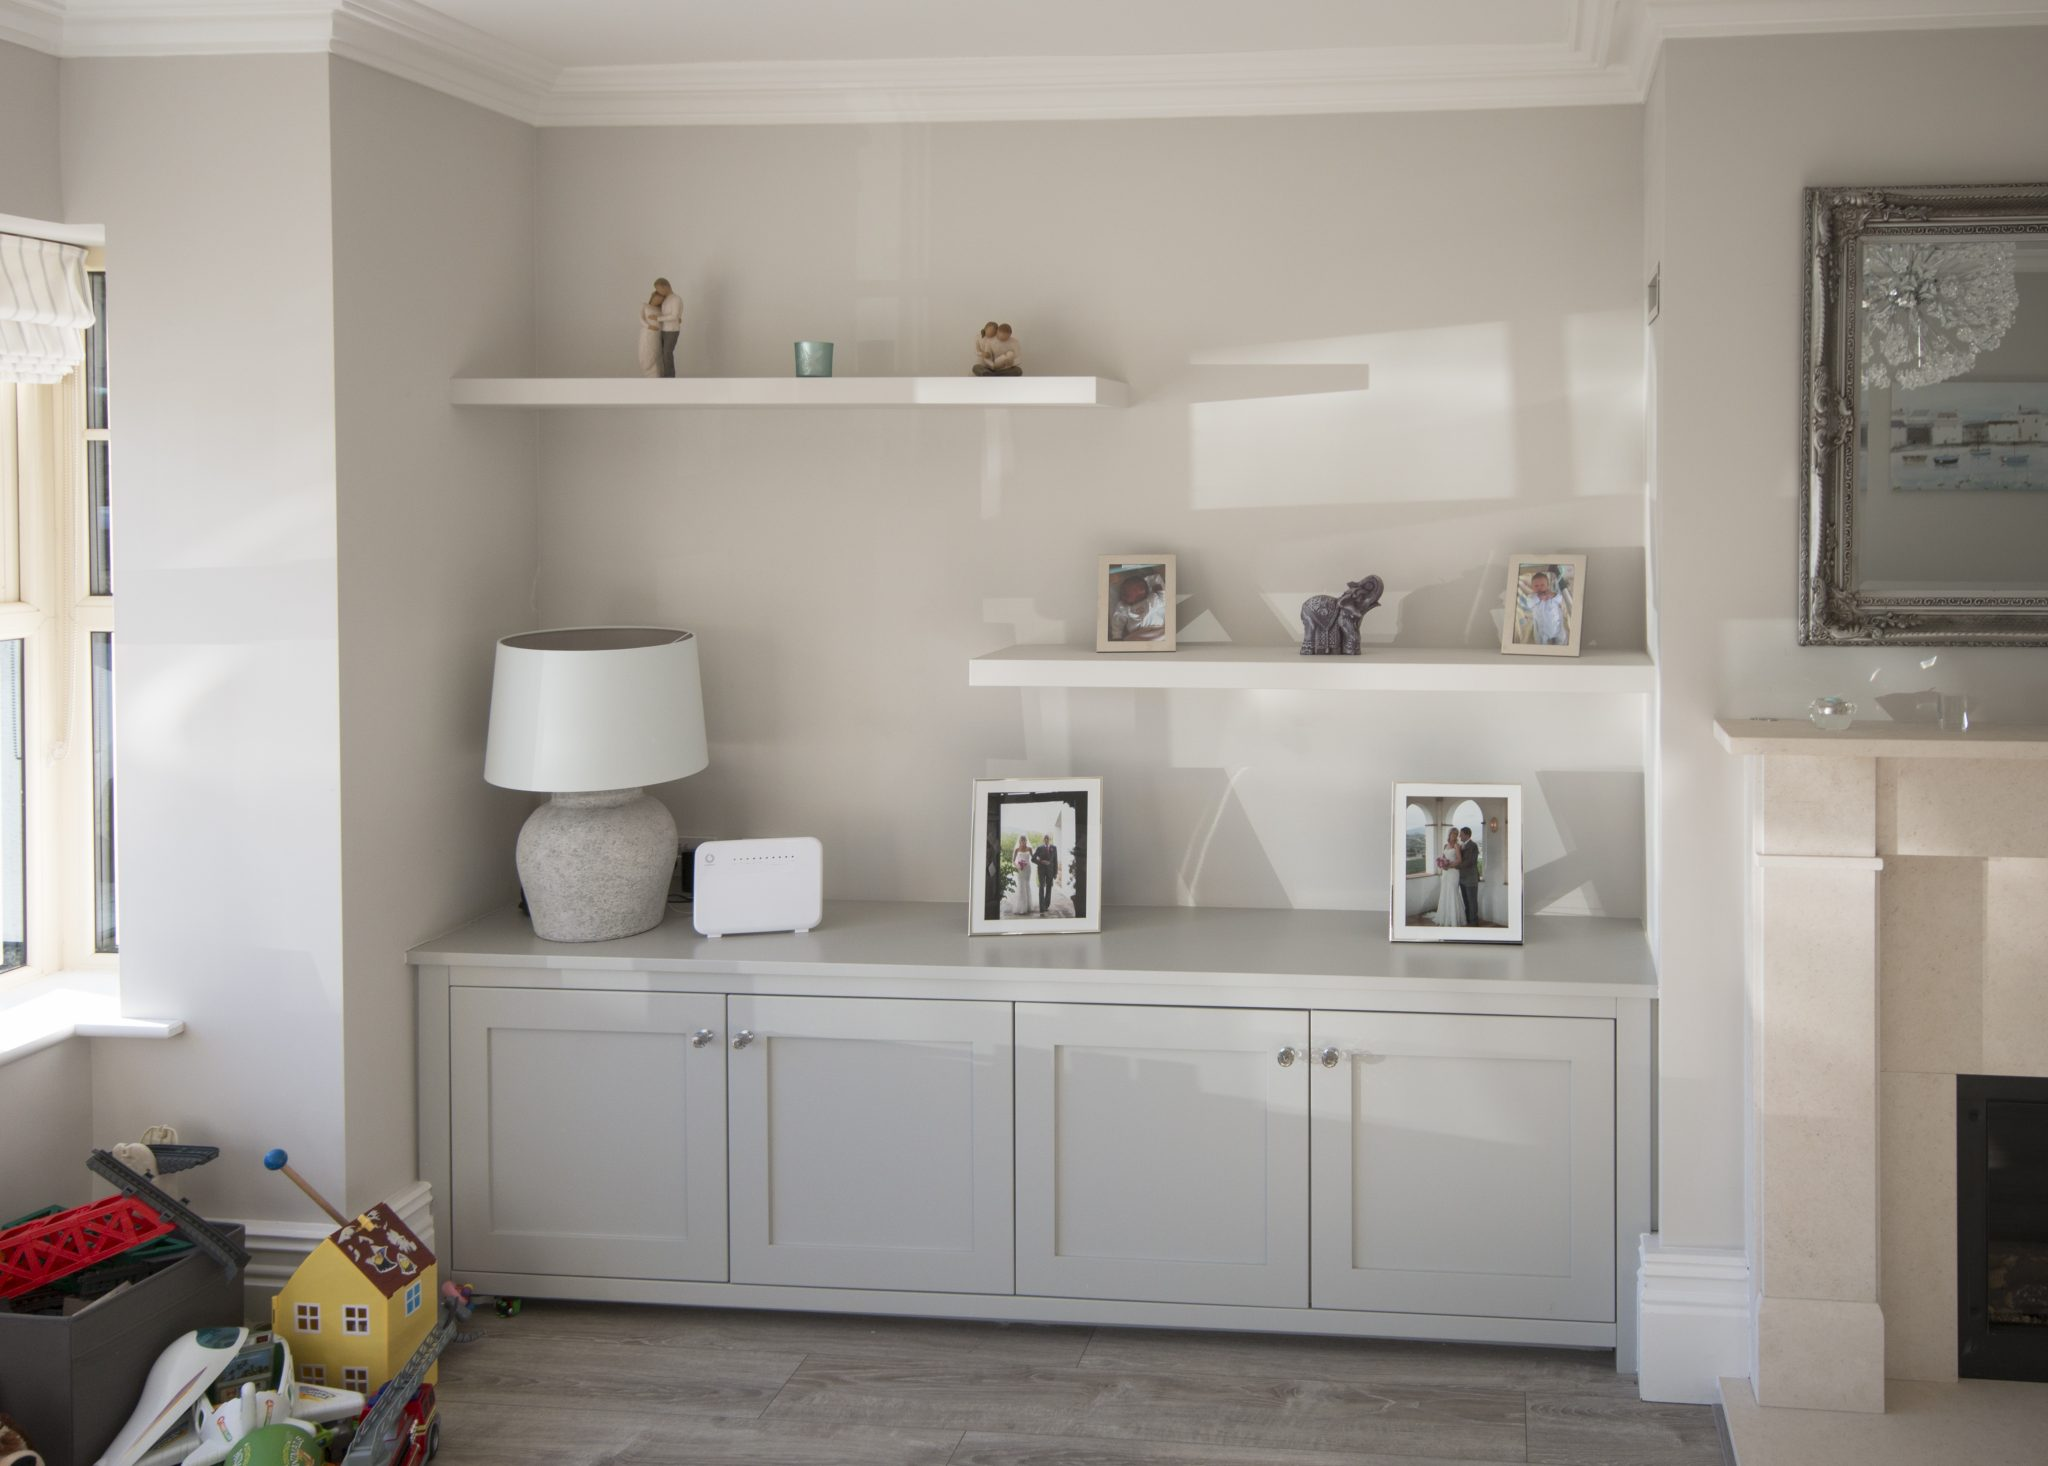 alcove units floating shelves enigma design bespoke cabinetry 4